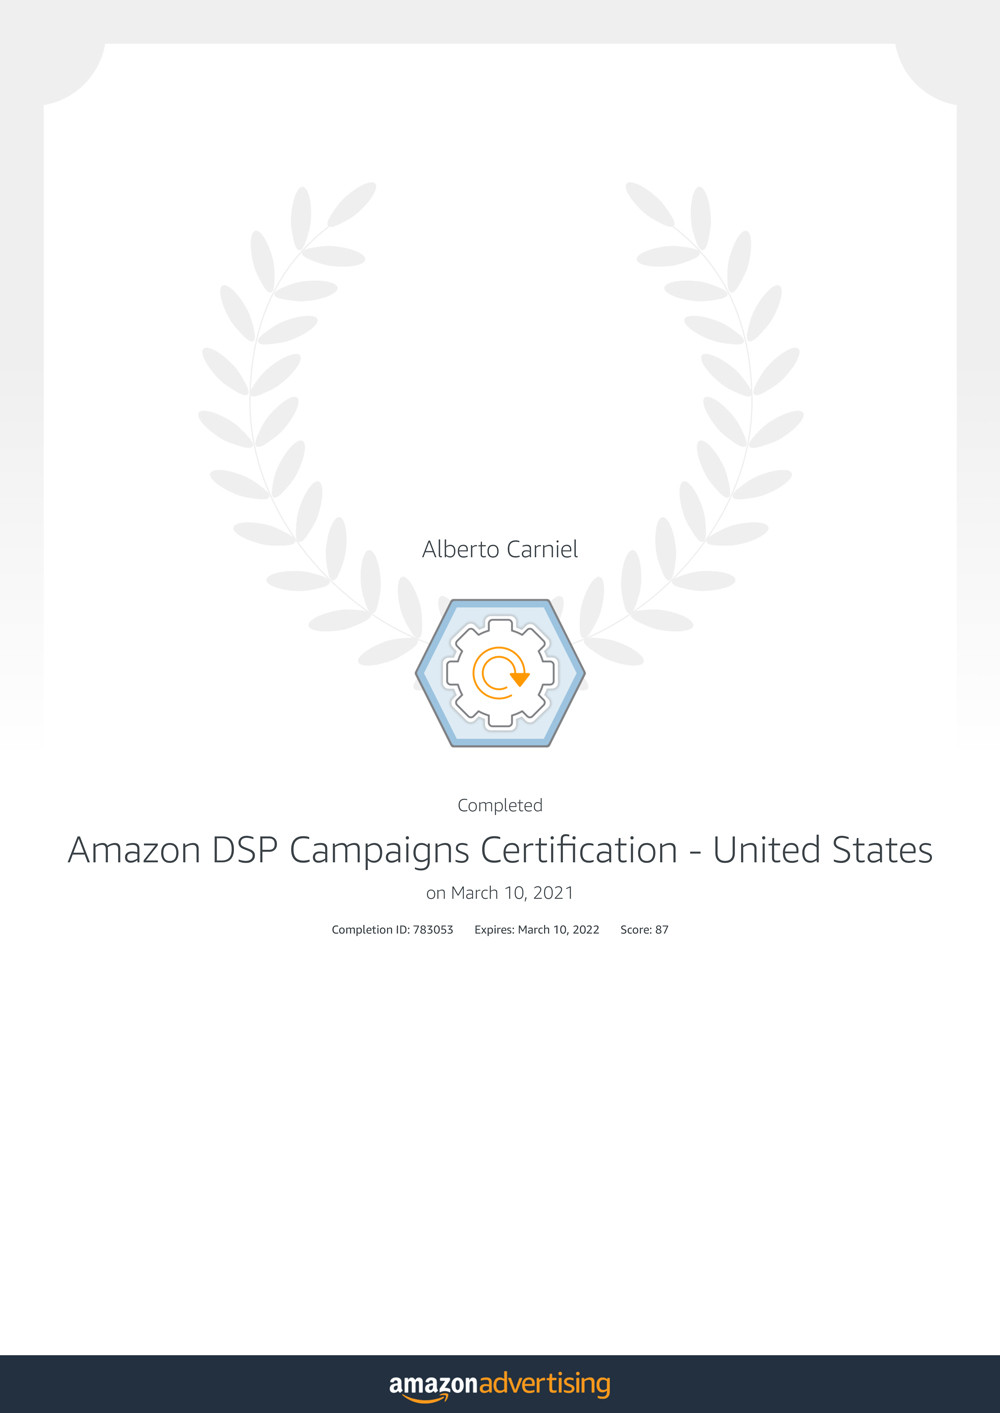 Amazon DSP Campaigns Certification